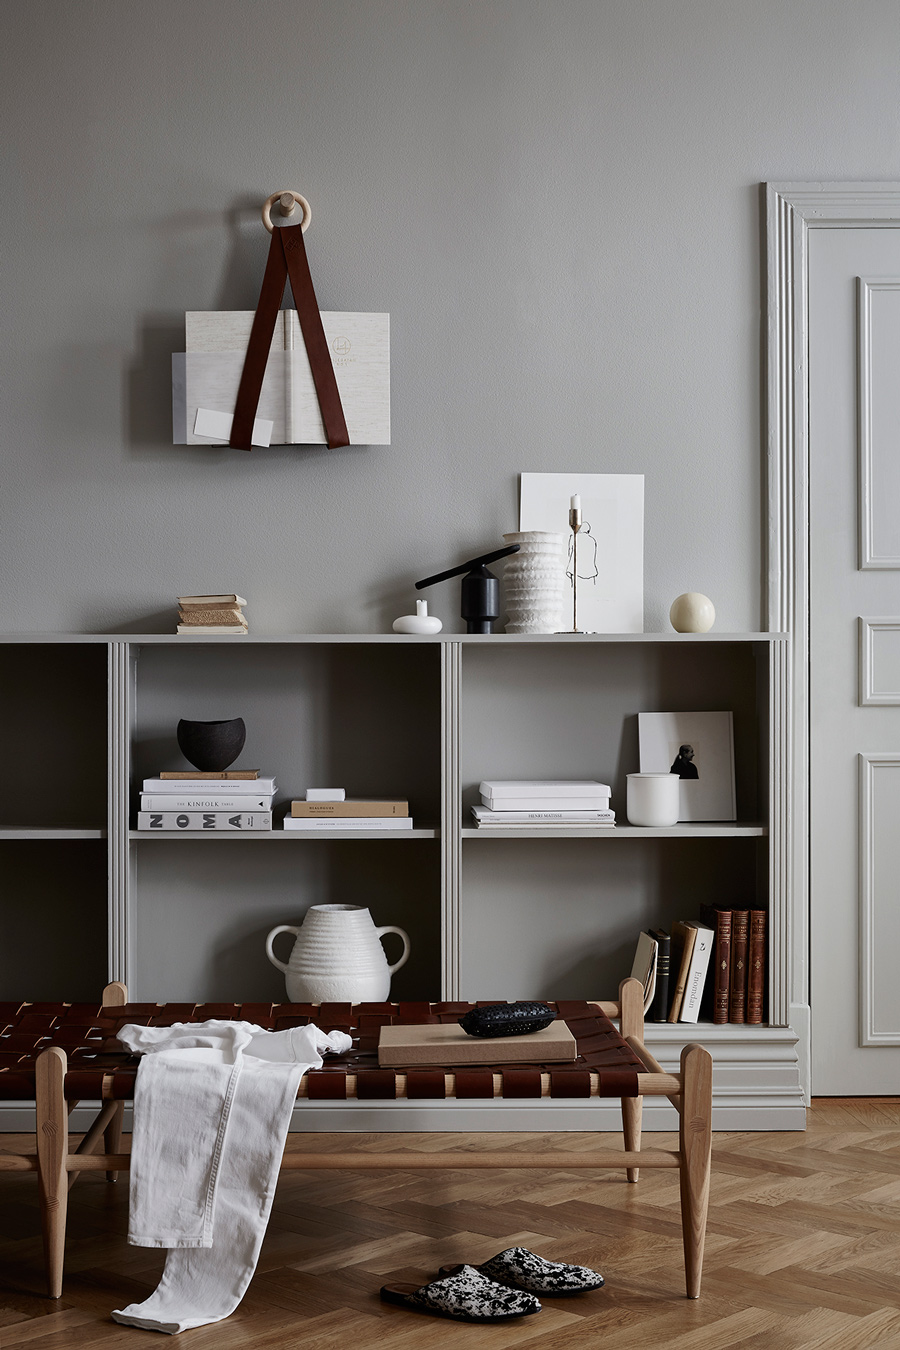 discover the beautiful leather furniture and accessories by swedishdiscover the beautiful leather furniture and accessories by swedish design studio smålands skinnmanufaktur